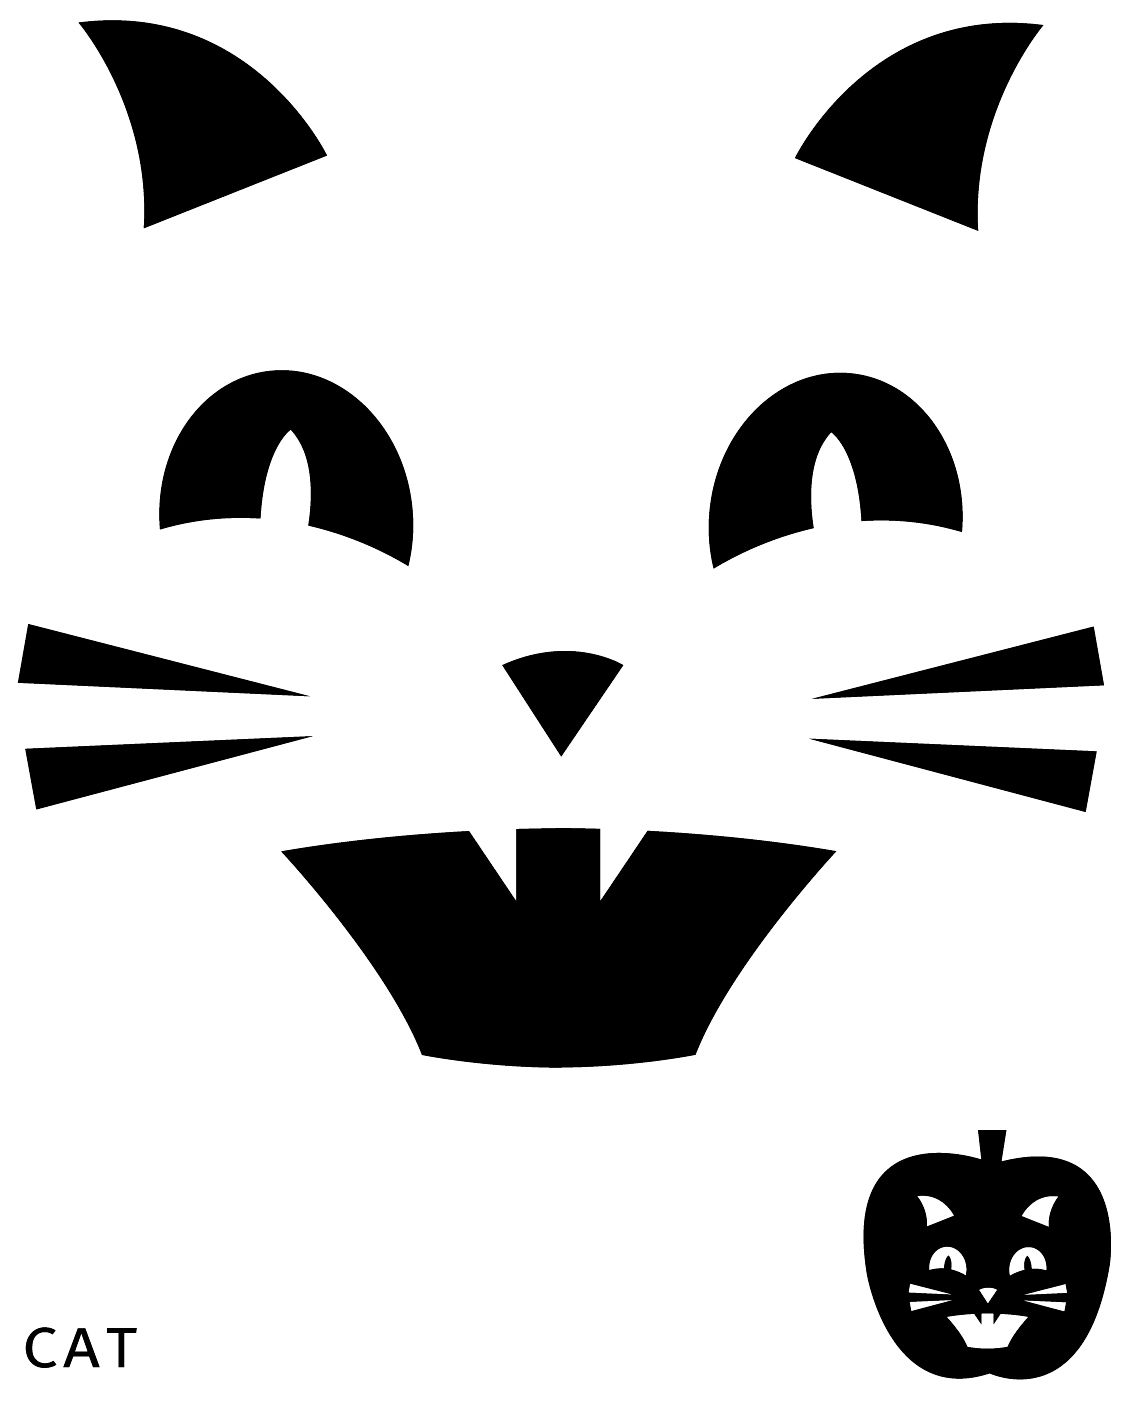 top cat face pumpkin carving pattern stencil template designs for cat lovers are shared here to make jack o lantern of their favourite cat face pumpkin